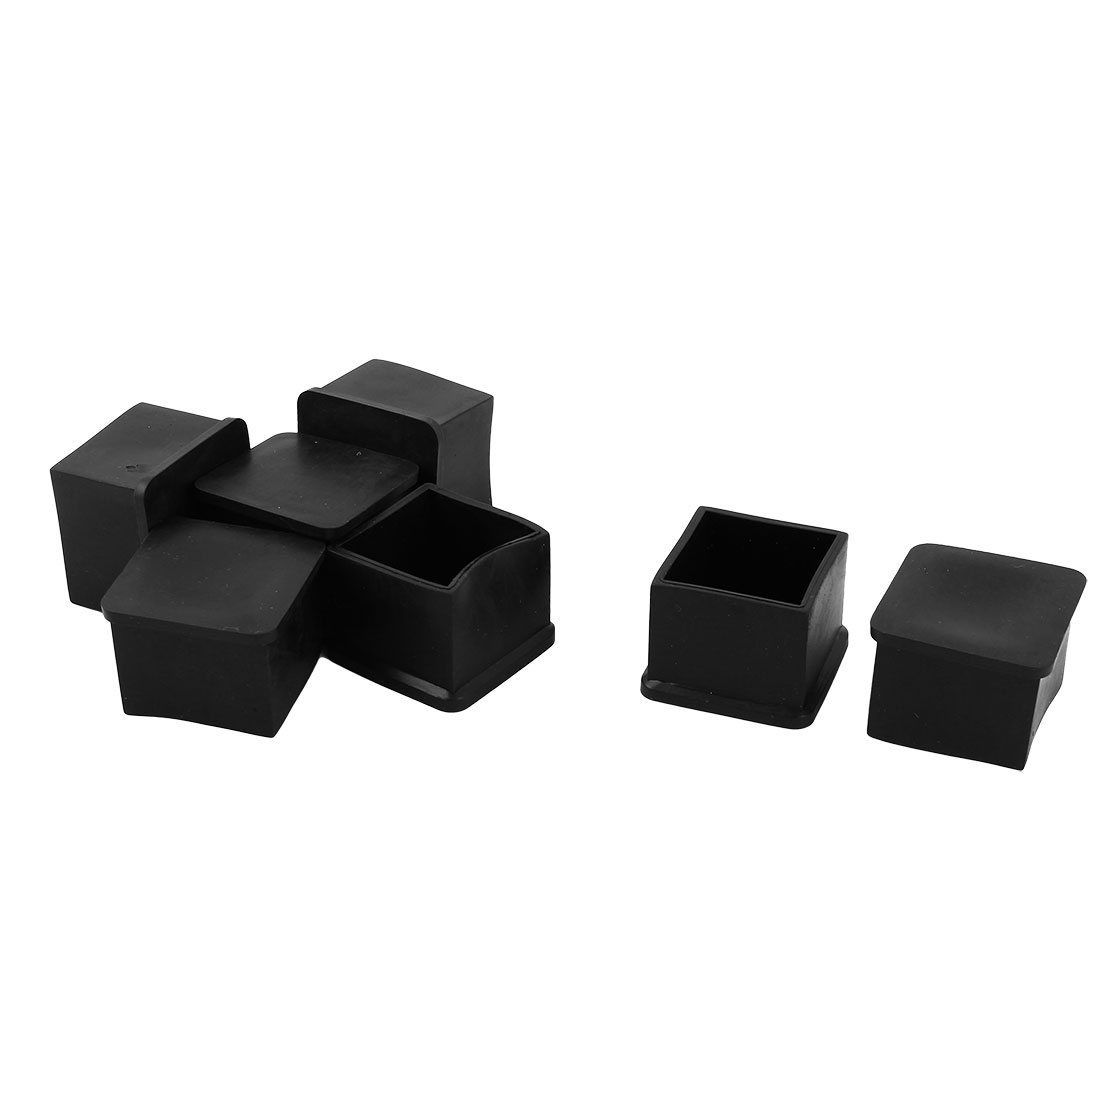 Home Rubber Square Furniture Foot Floor Protector Cover Black 30mm x 30mm 7 Pcs